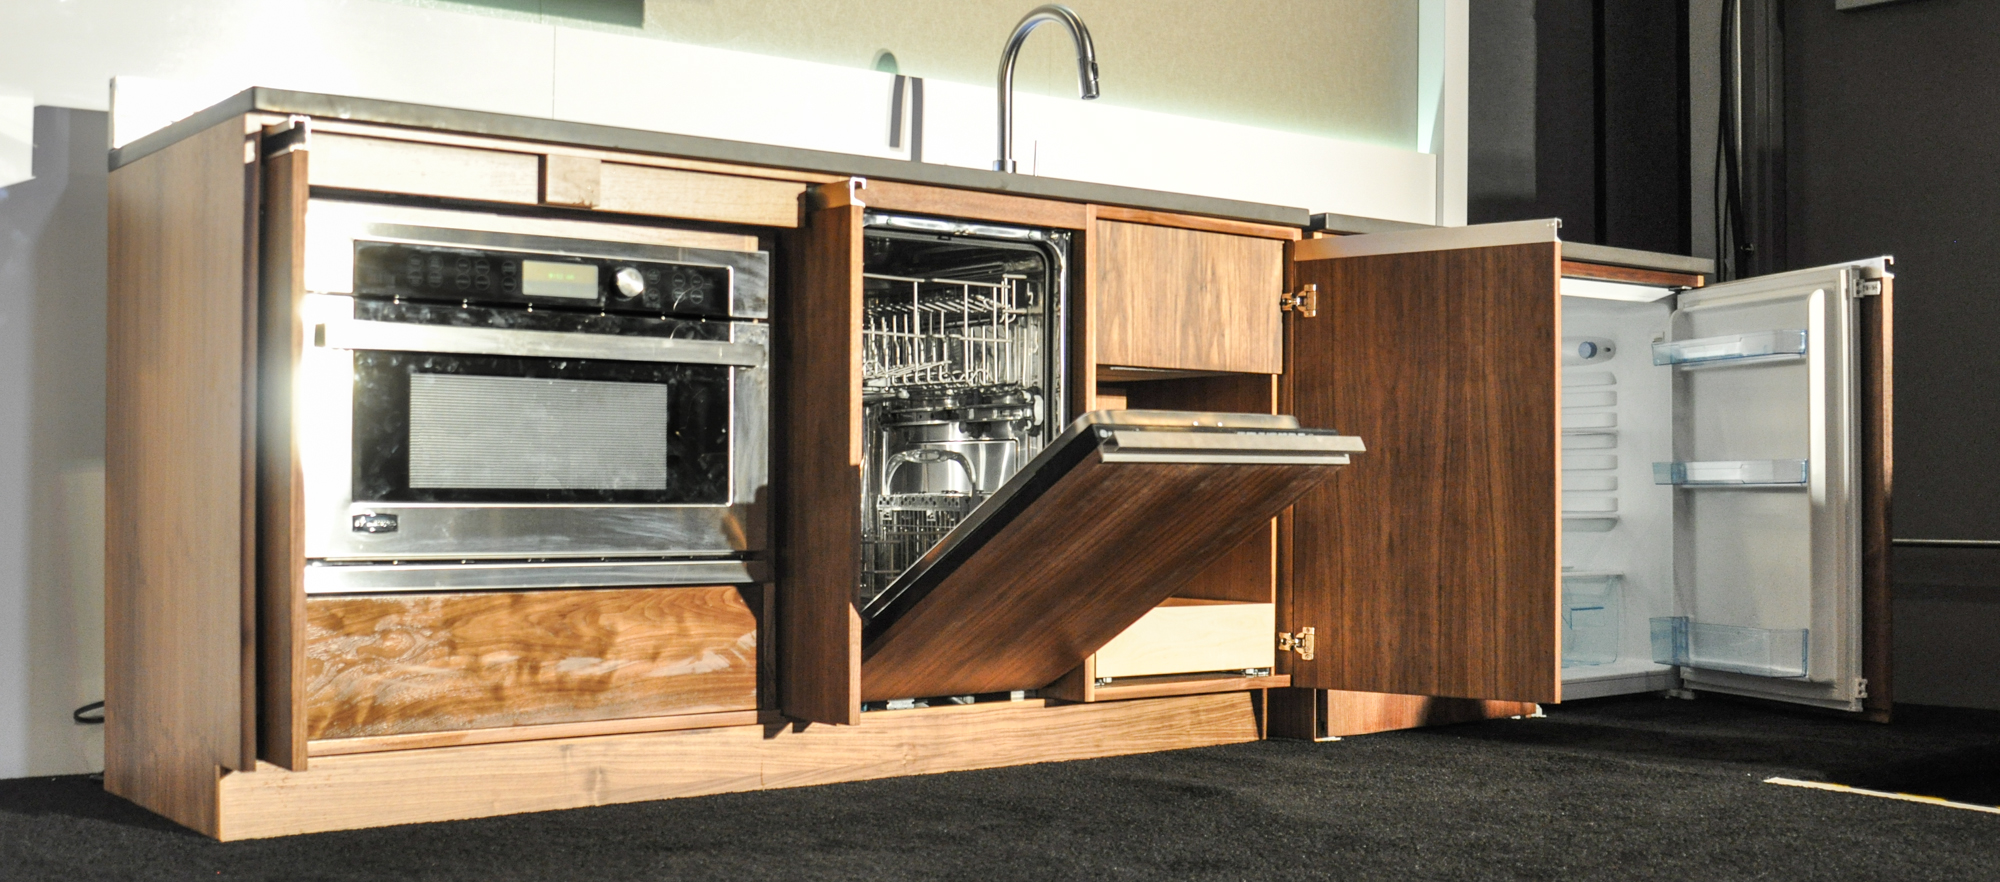 downsizing goes modular with ges micro living concept reviewedcom dishwashers